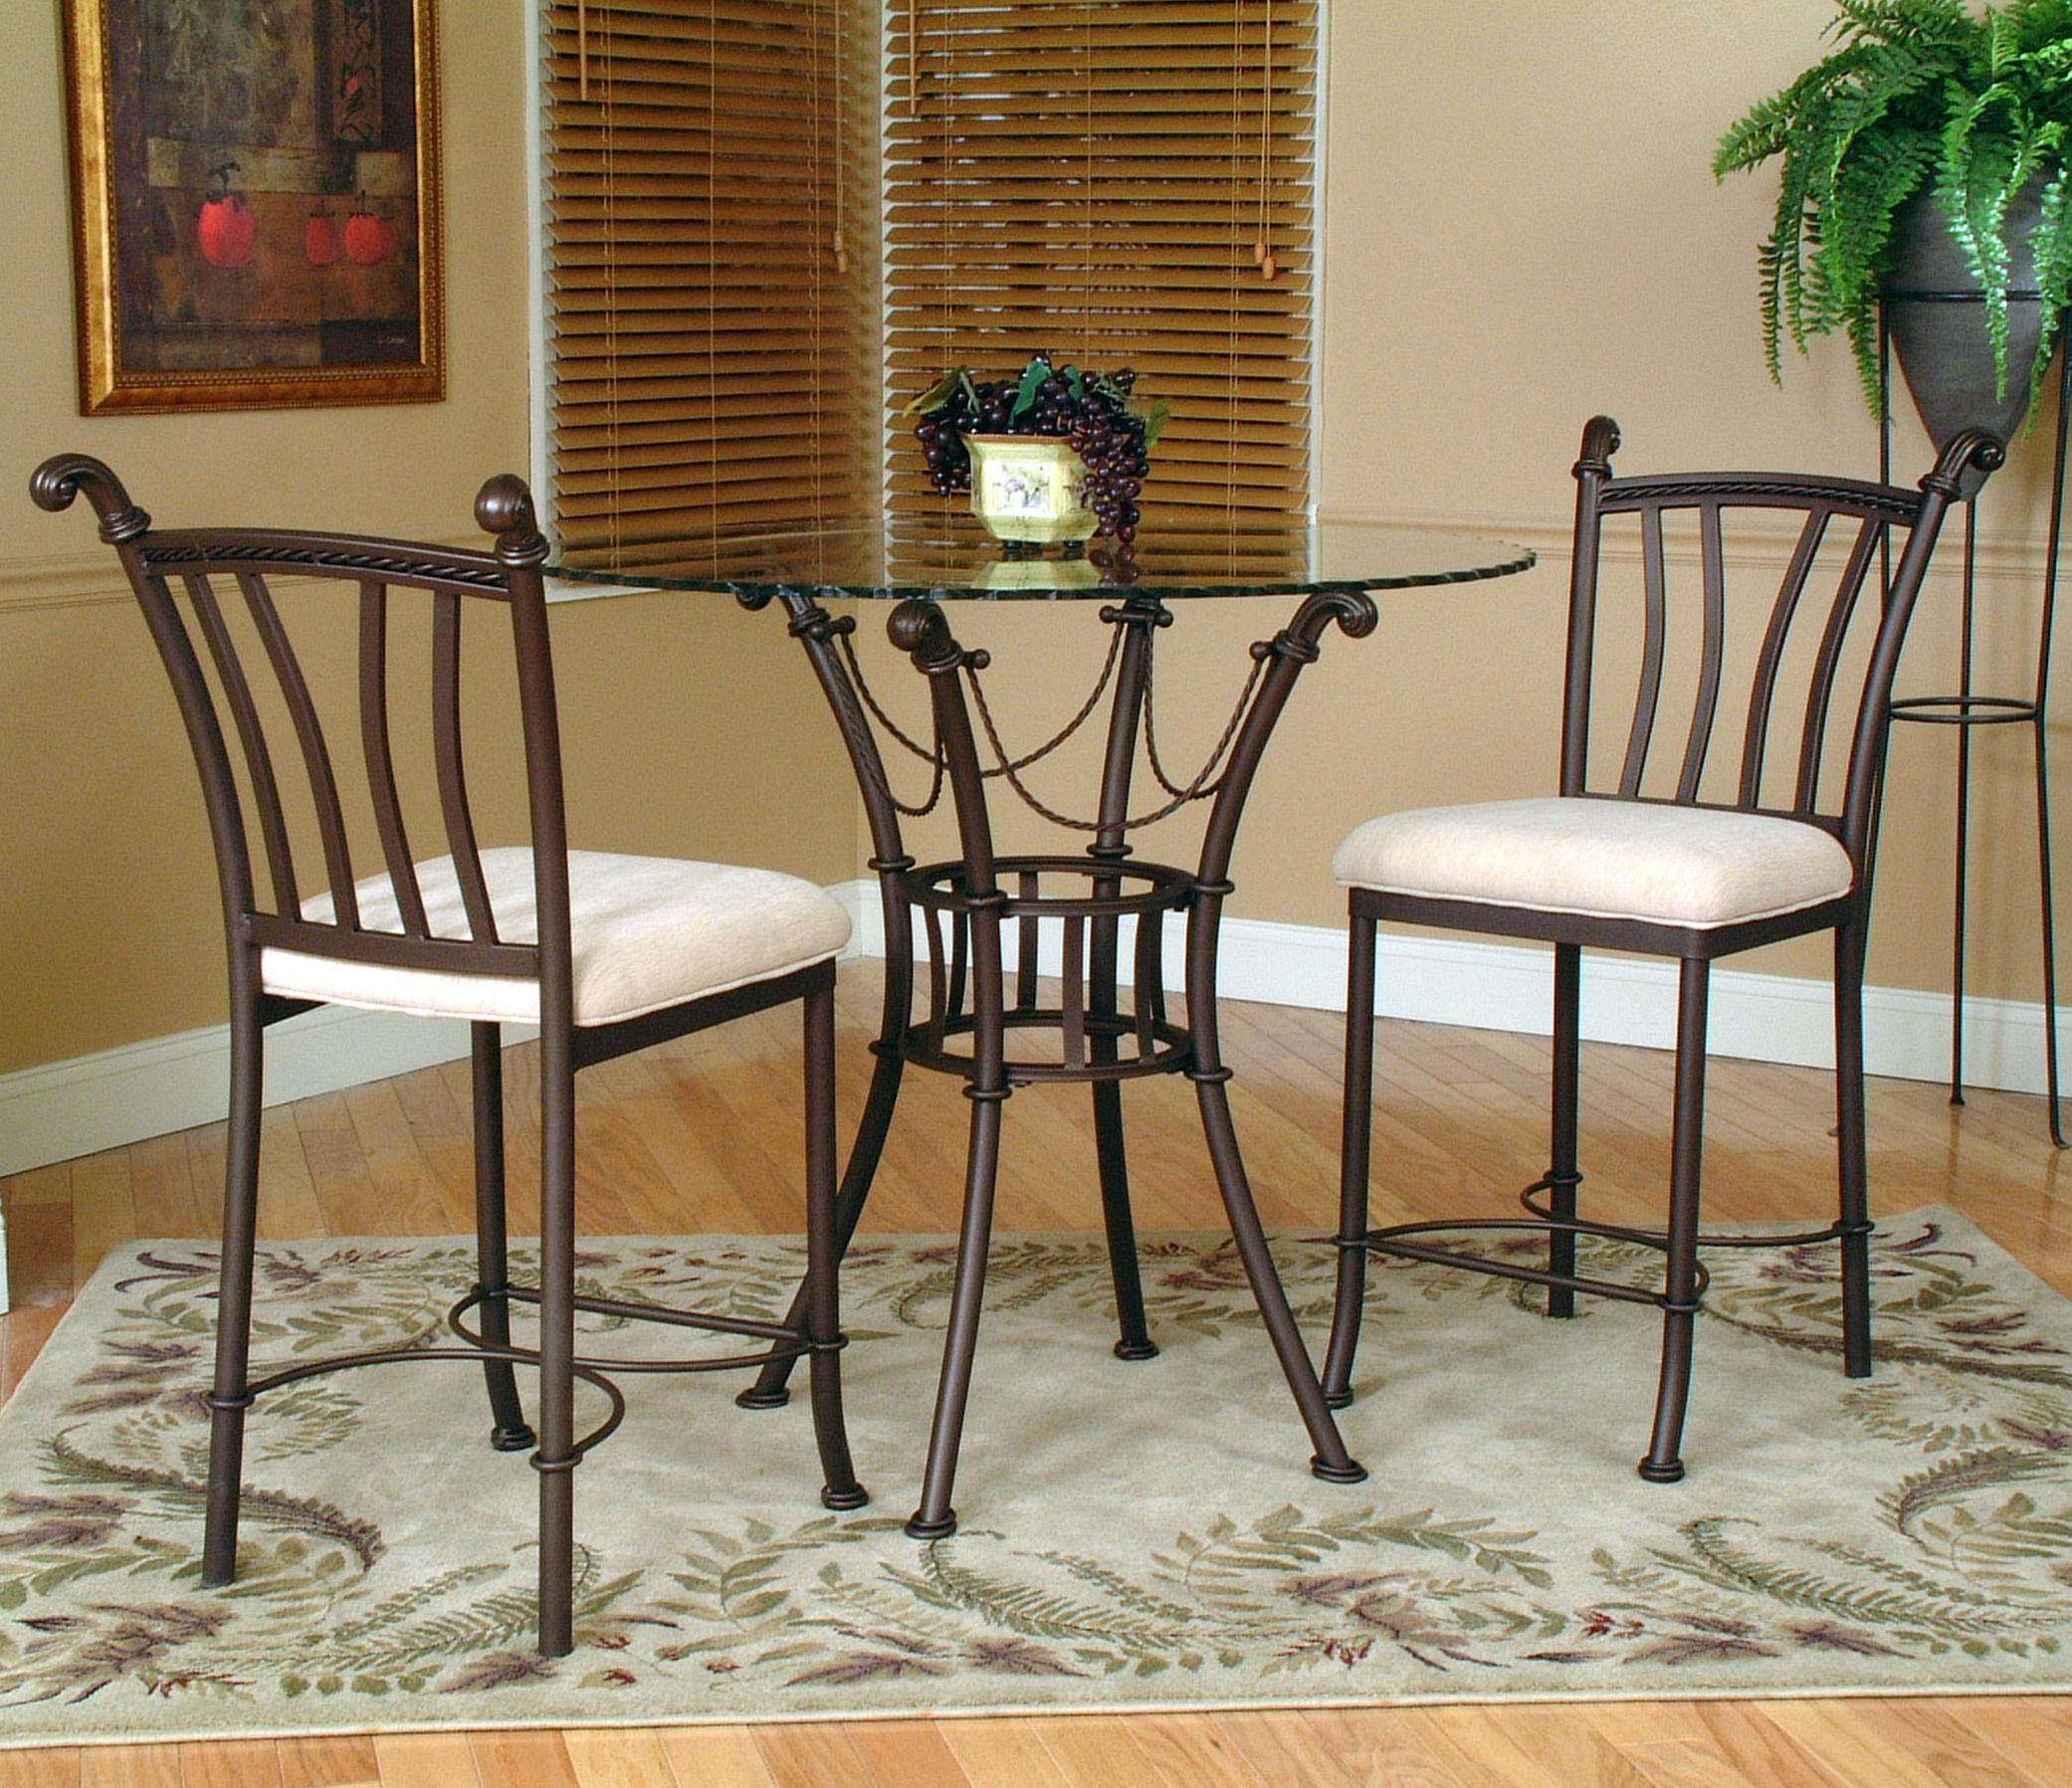 3 Piece Counter Height Glass Table And Chair